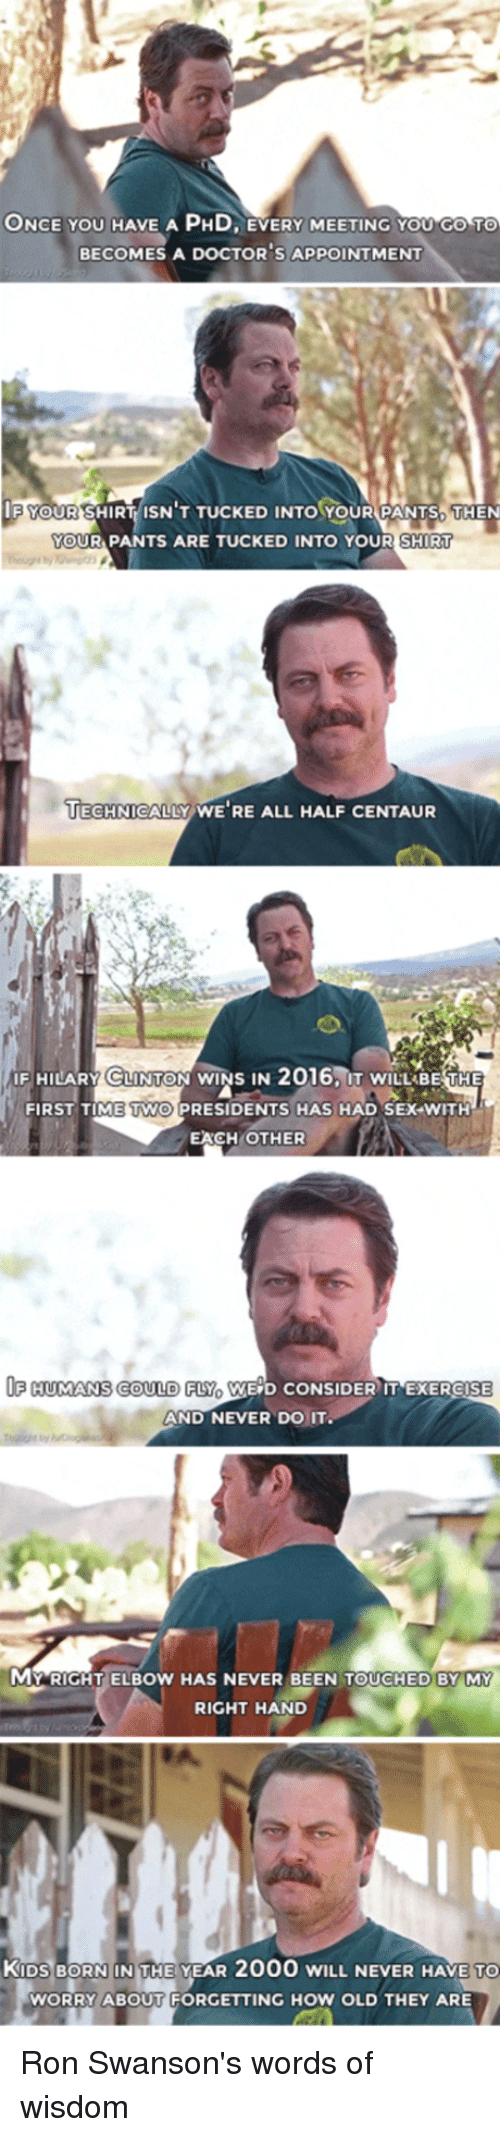 Doctor, Nick Offerman, and Ron Swanson: ONCE YOU HAVE A PHD EVERY MEETING You Go To  BECOMES A DOCTOR S APPOINTMENT  F YOUR SHIRT ISN T TUCKED INTO YOUR PANTS THEN  YOUR PANTS ARE TUCKED INTO YOUR SHIRT  TECHNICALLY WE'RE ALL HALF CENTAUR  F HILARY CLINTON WINS IN  2016, IT wILL BE THE  FIRST TIME TWO PRESIDENTS HAS HAD SEX WITH  EACH OTHER  OF HUMANS COULD FLY WEGD CONSIDER IT EXER  SE  AND NEVER DO IT.  MARICHT ELBow HAS NEVER BEEN TOUCHED BY MY  RIGHT HAND  KIDS BORN IN THE YEAR 2000 wILL NEVER HAVE TO  WORRY ABOUT FORGETTING HOW OLD THEY ARE Ron Swanson's words of wisdom